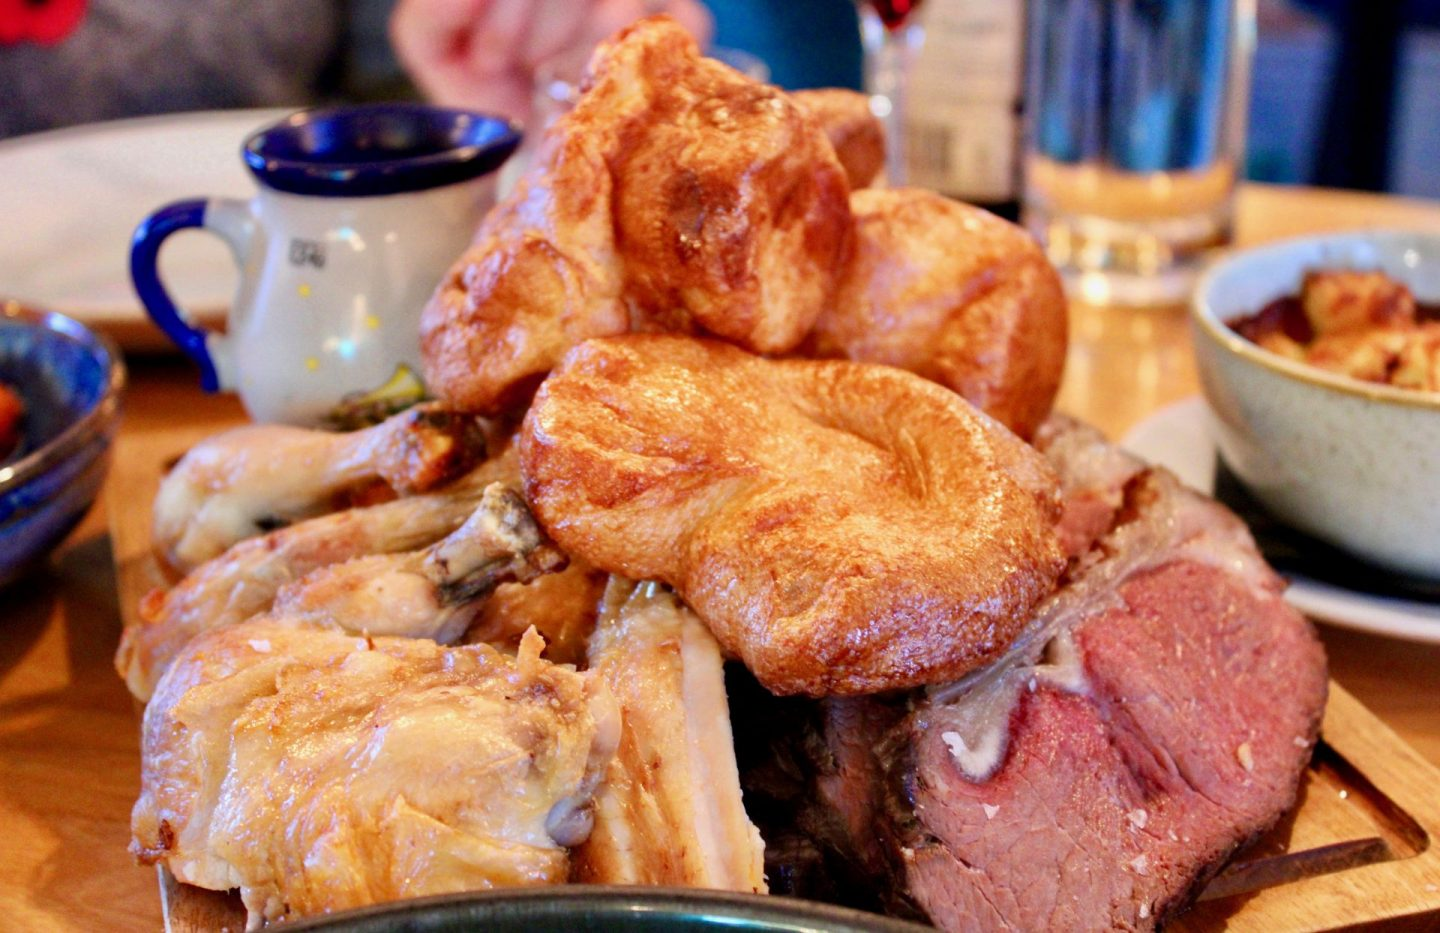 Sirloin of beef, roast chicken and Yorkshire puddings stacked up on a sharing platter at the Foundry, one of the best restaurants in Leeds